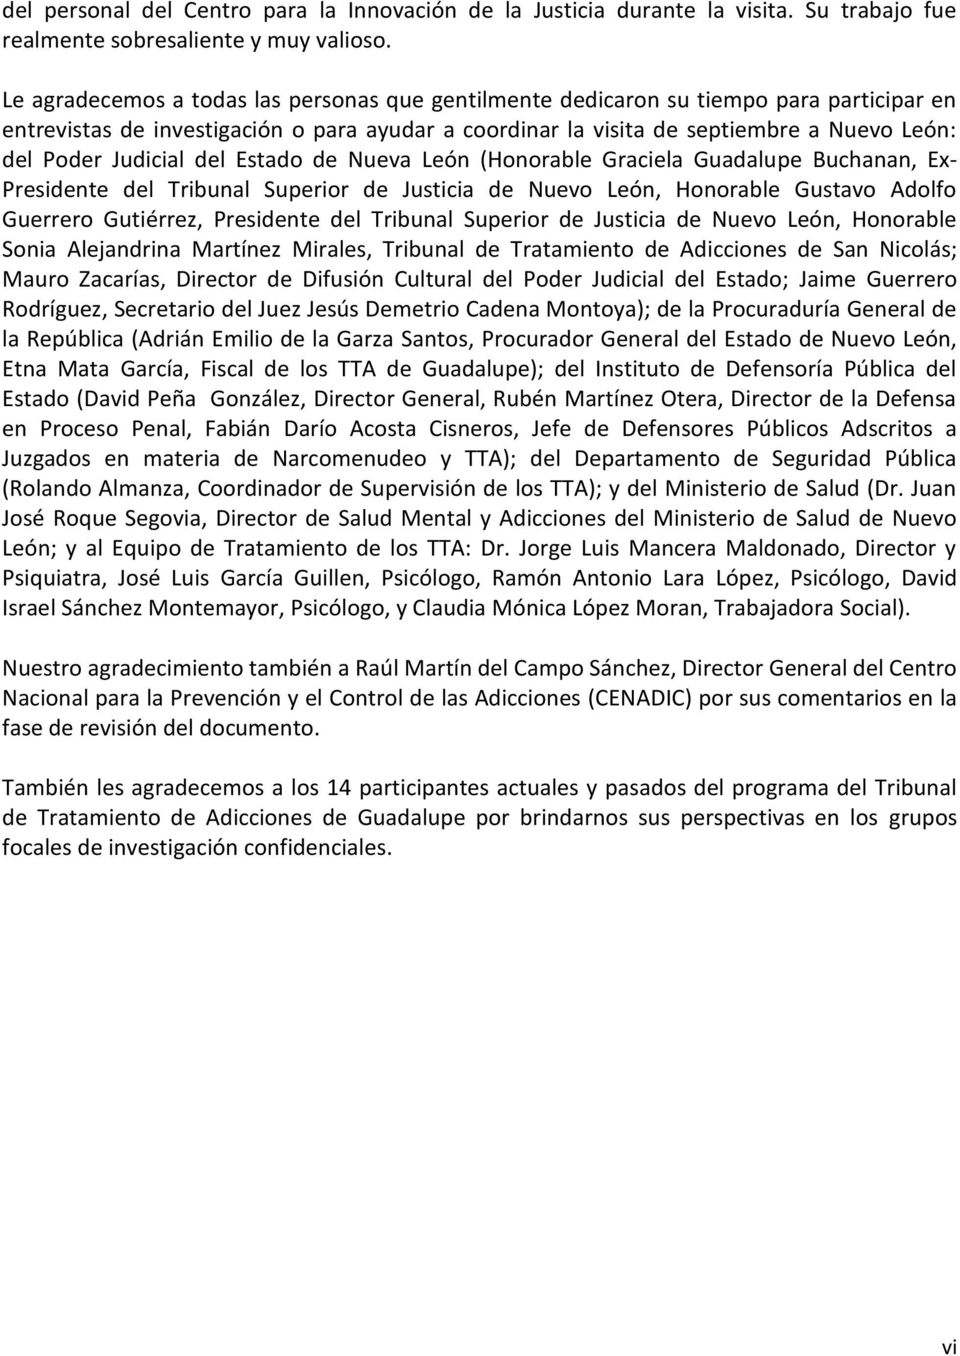 Judicial del Estado de Nueva León (Honorable Graciela Guadalupe Buchanan, Ex- Presidente del Tribunal Superior de Justicia de Nuevo León, Honorable Gustavo Adolfo Guerrero Gutiérrez, Presidente del